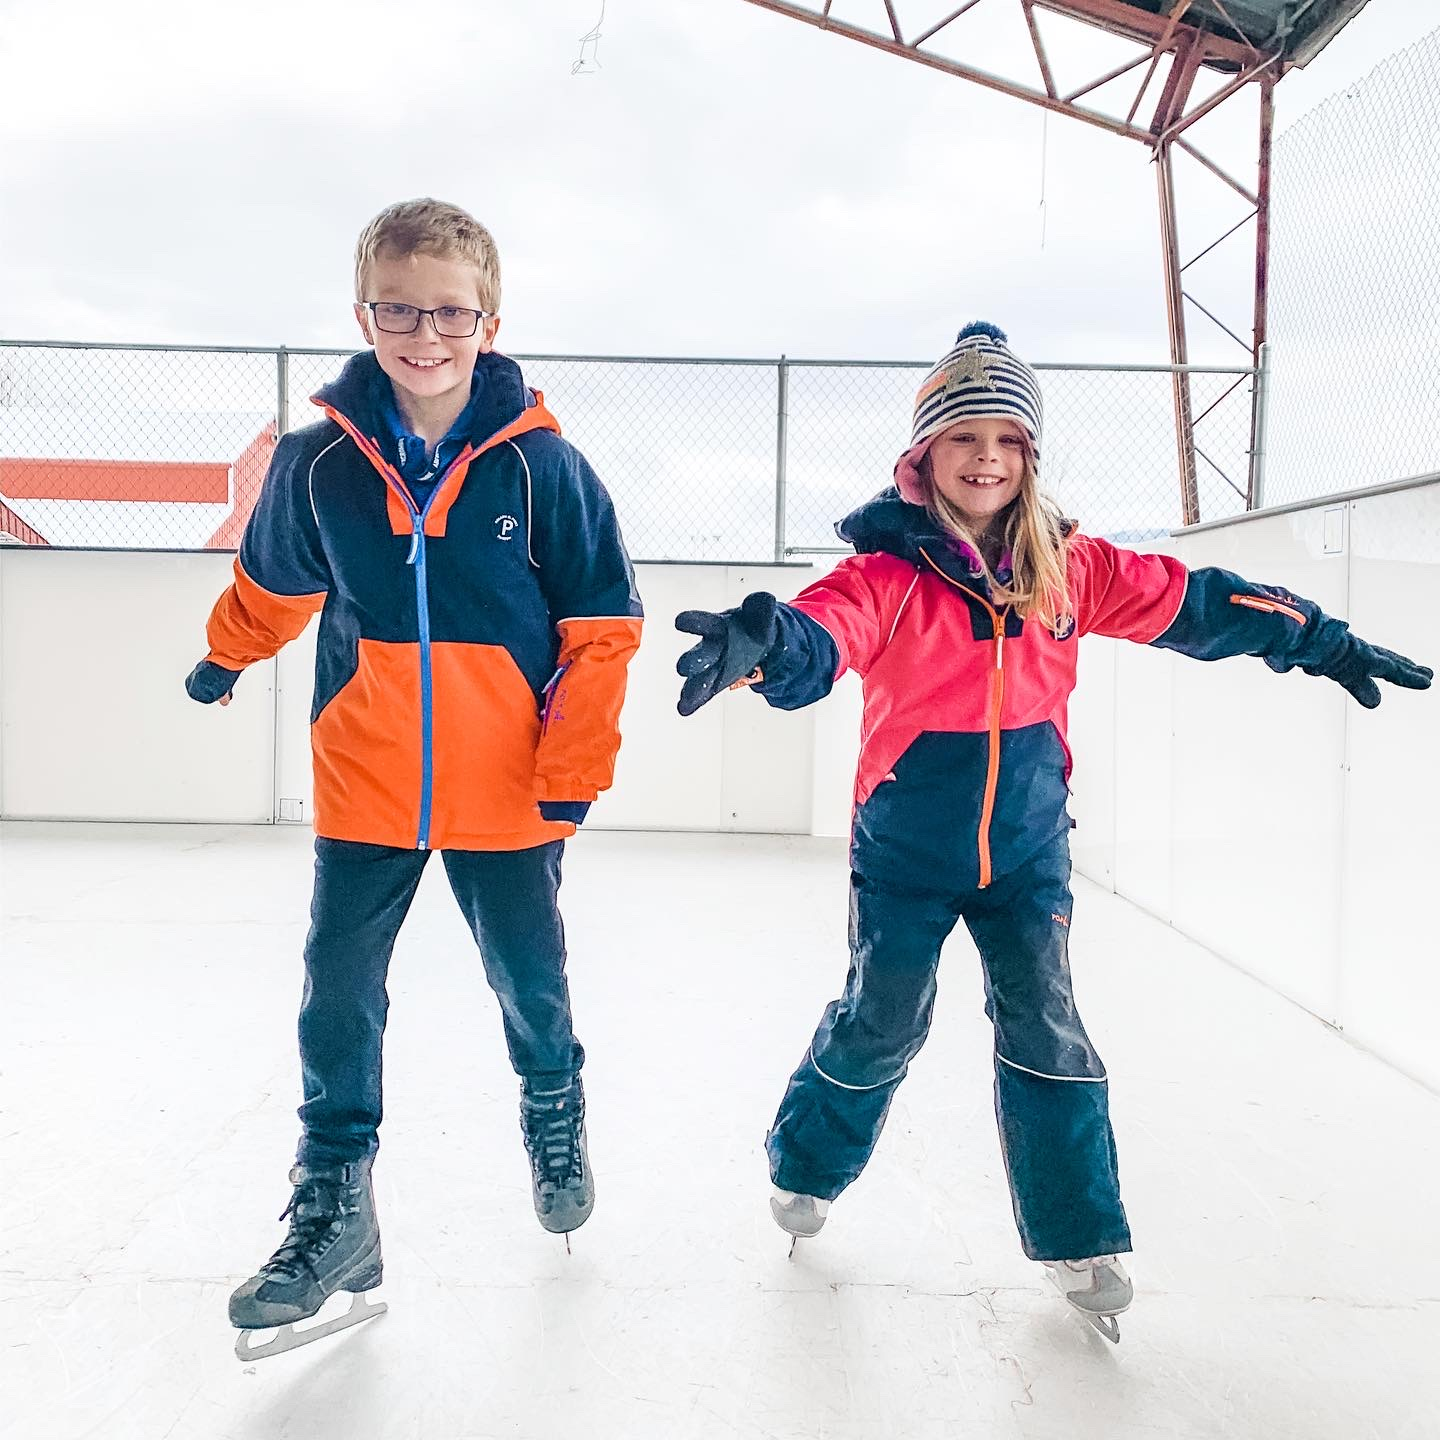 Polarn O. Pyret Kids Ski Gear review